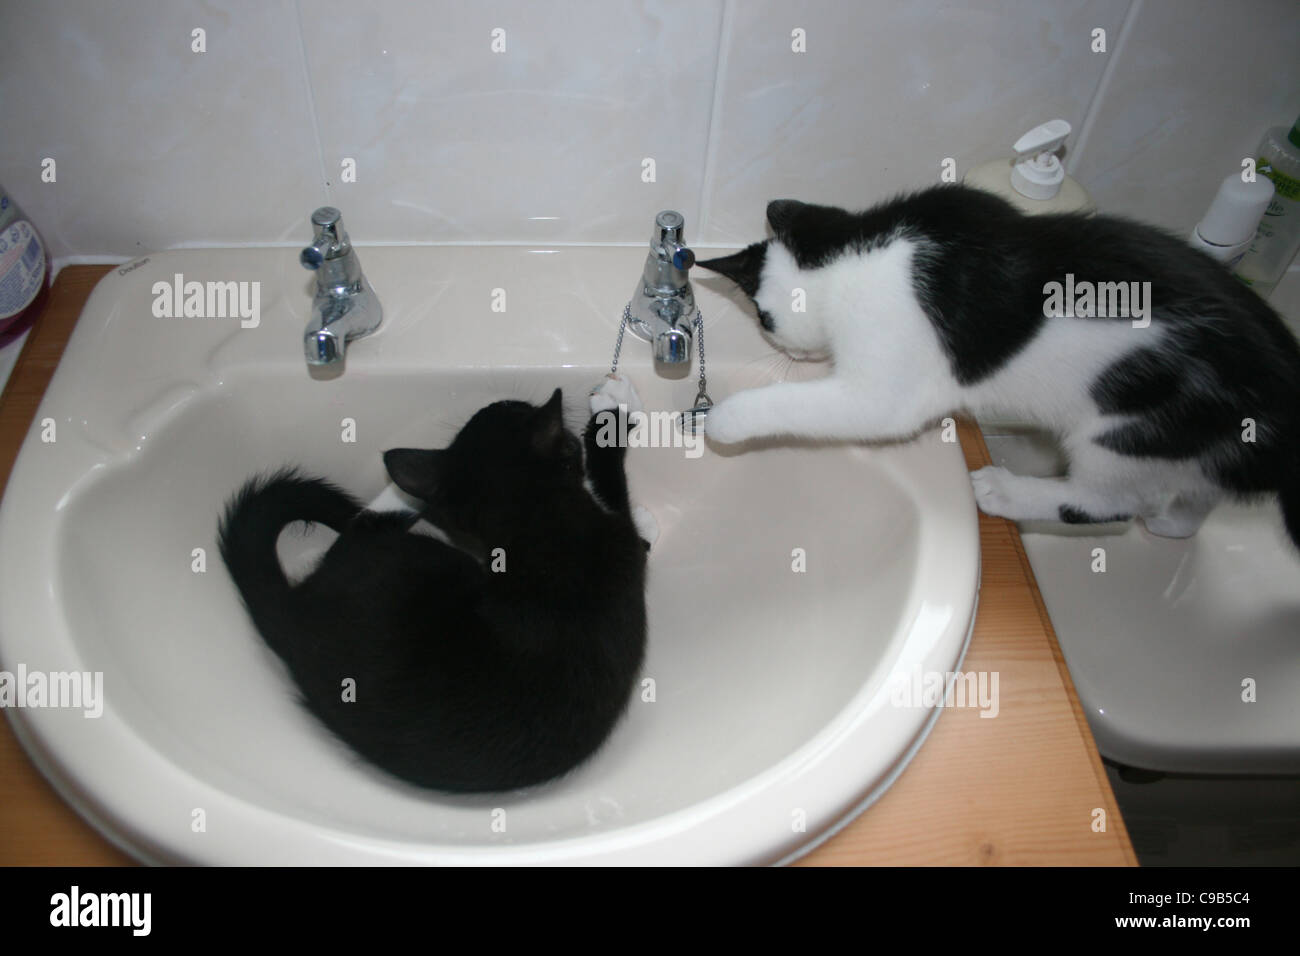 How To Wash A Kitten Best Cat And Kitten Image And HD 2017